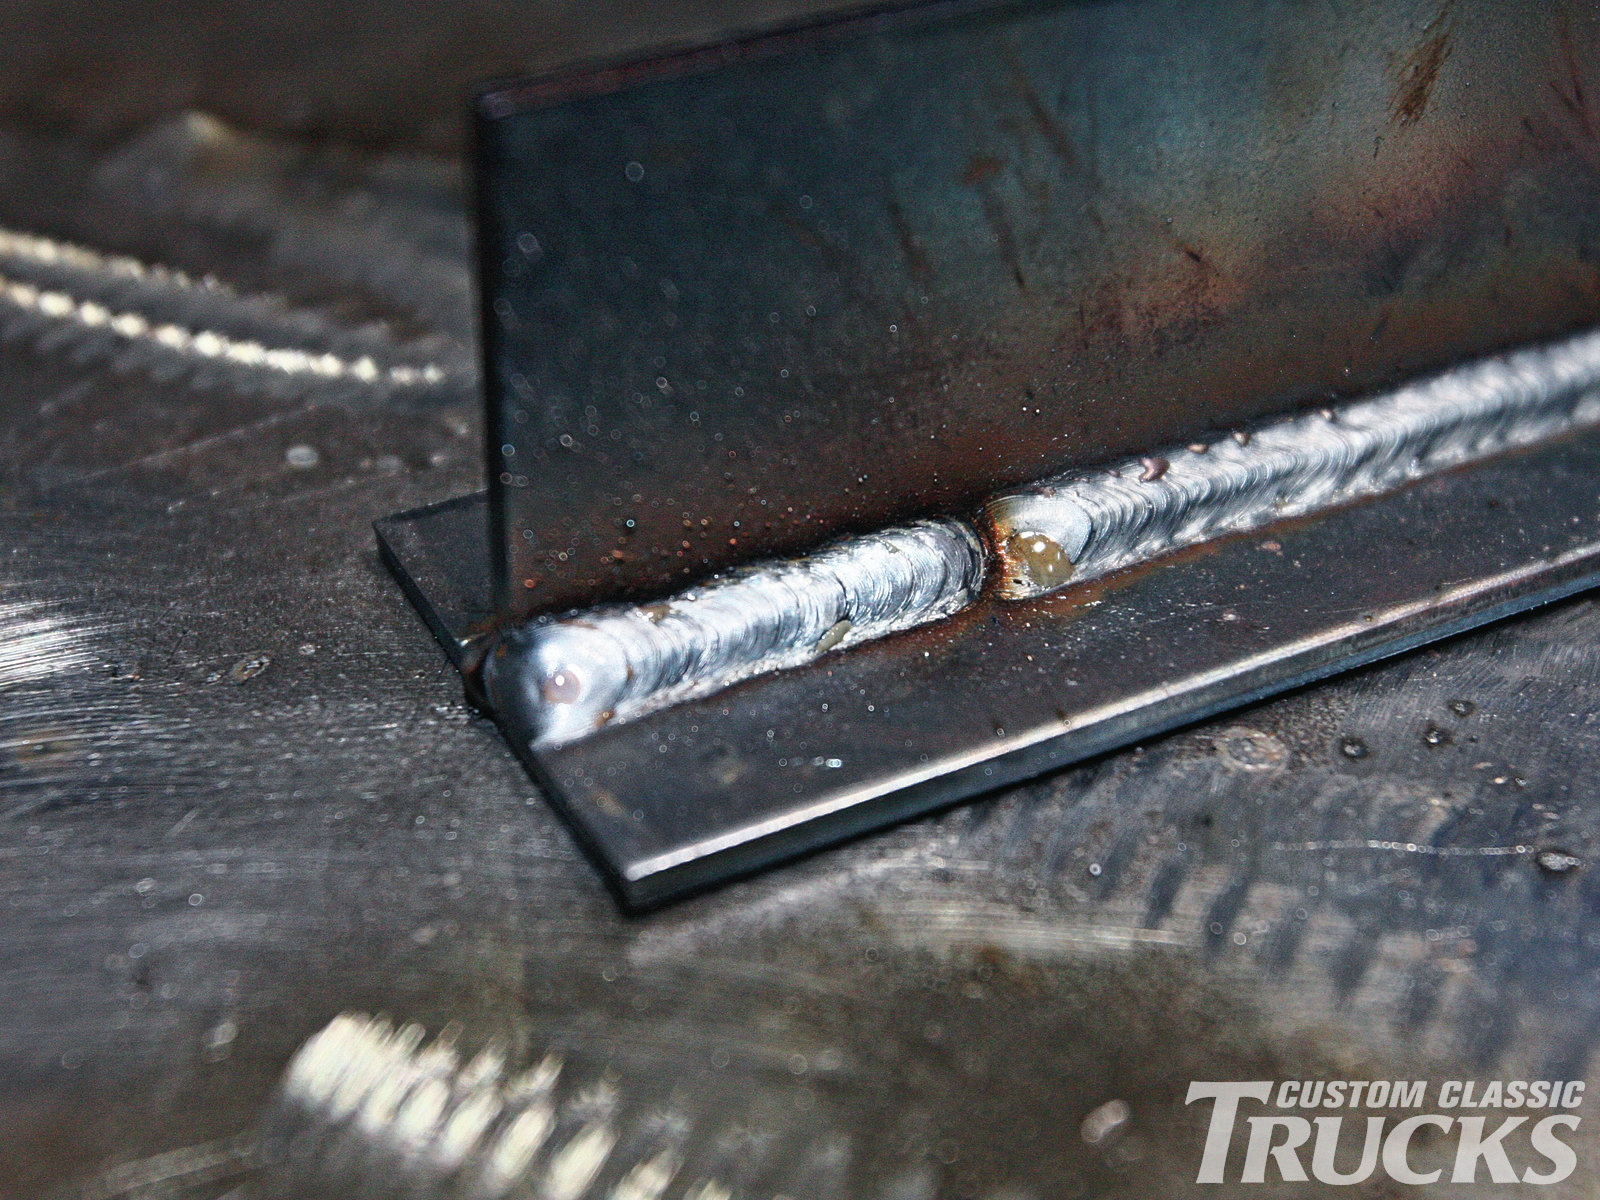 7. The amount of electrode stickout when making fillet welds can affect the penetration and weld shape.